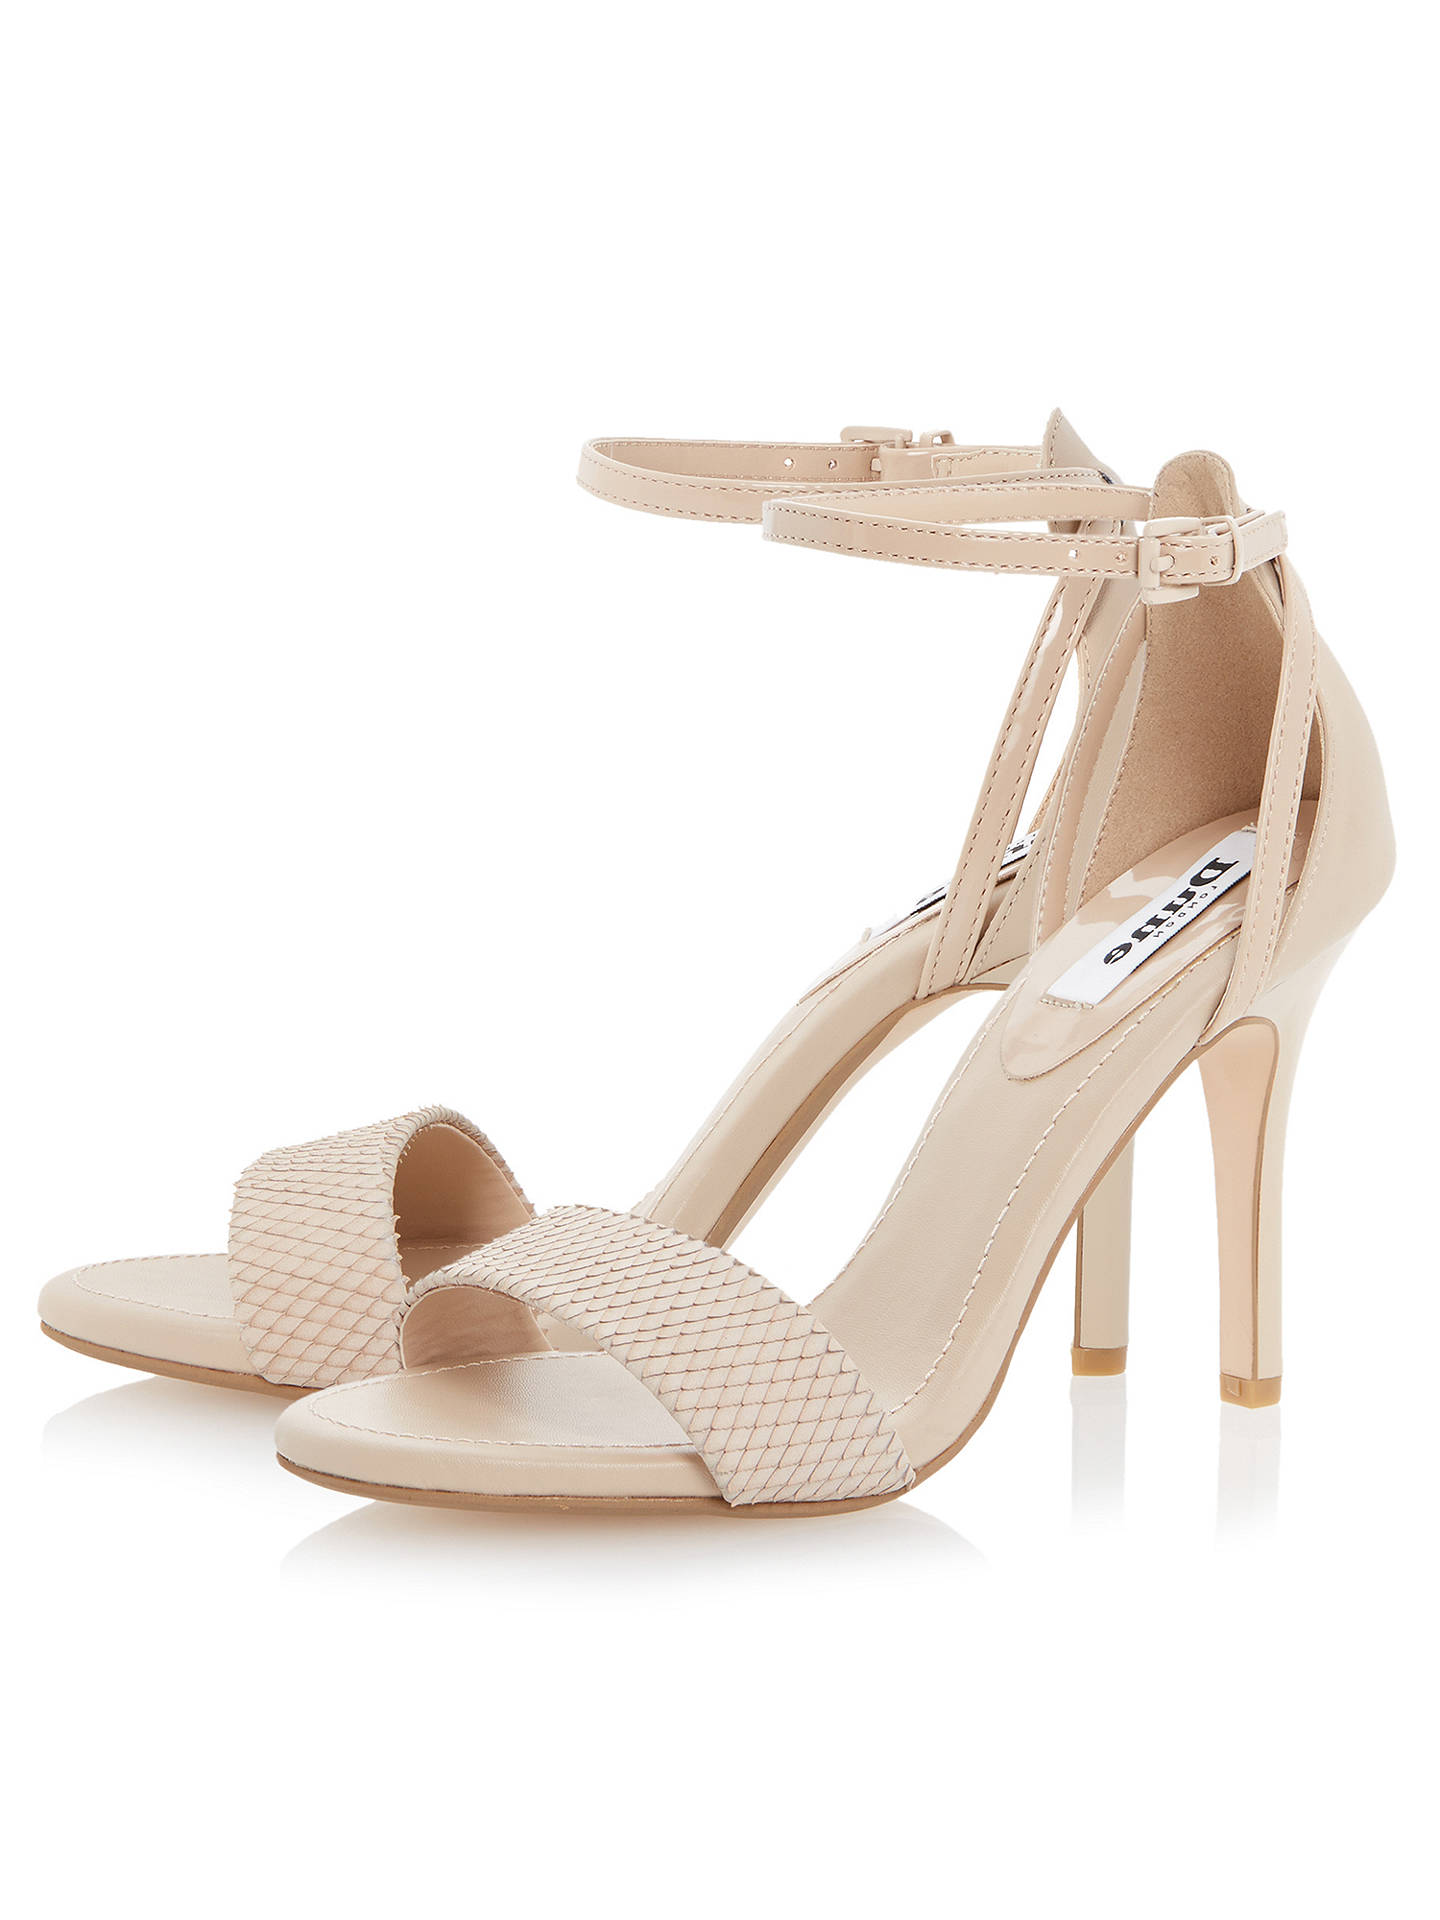 BuyDune Madeira Ankle Strap Sandals, Nude Leather, 3 Online at johnlewis.com